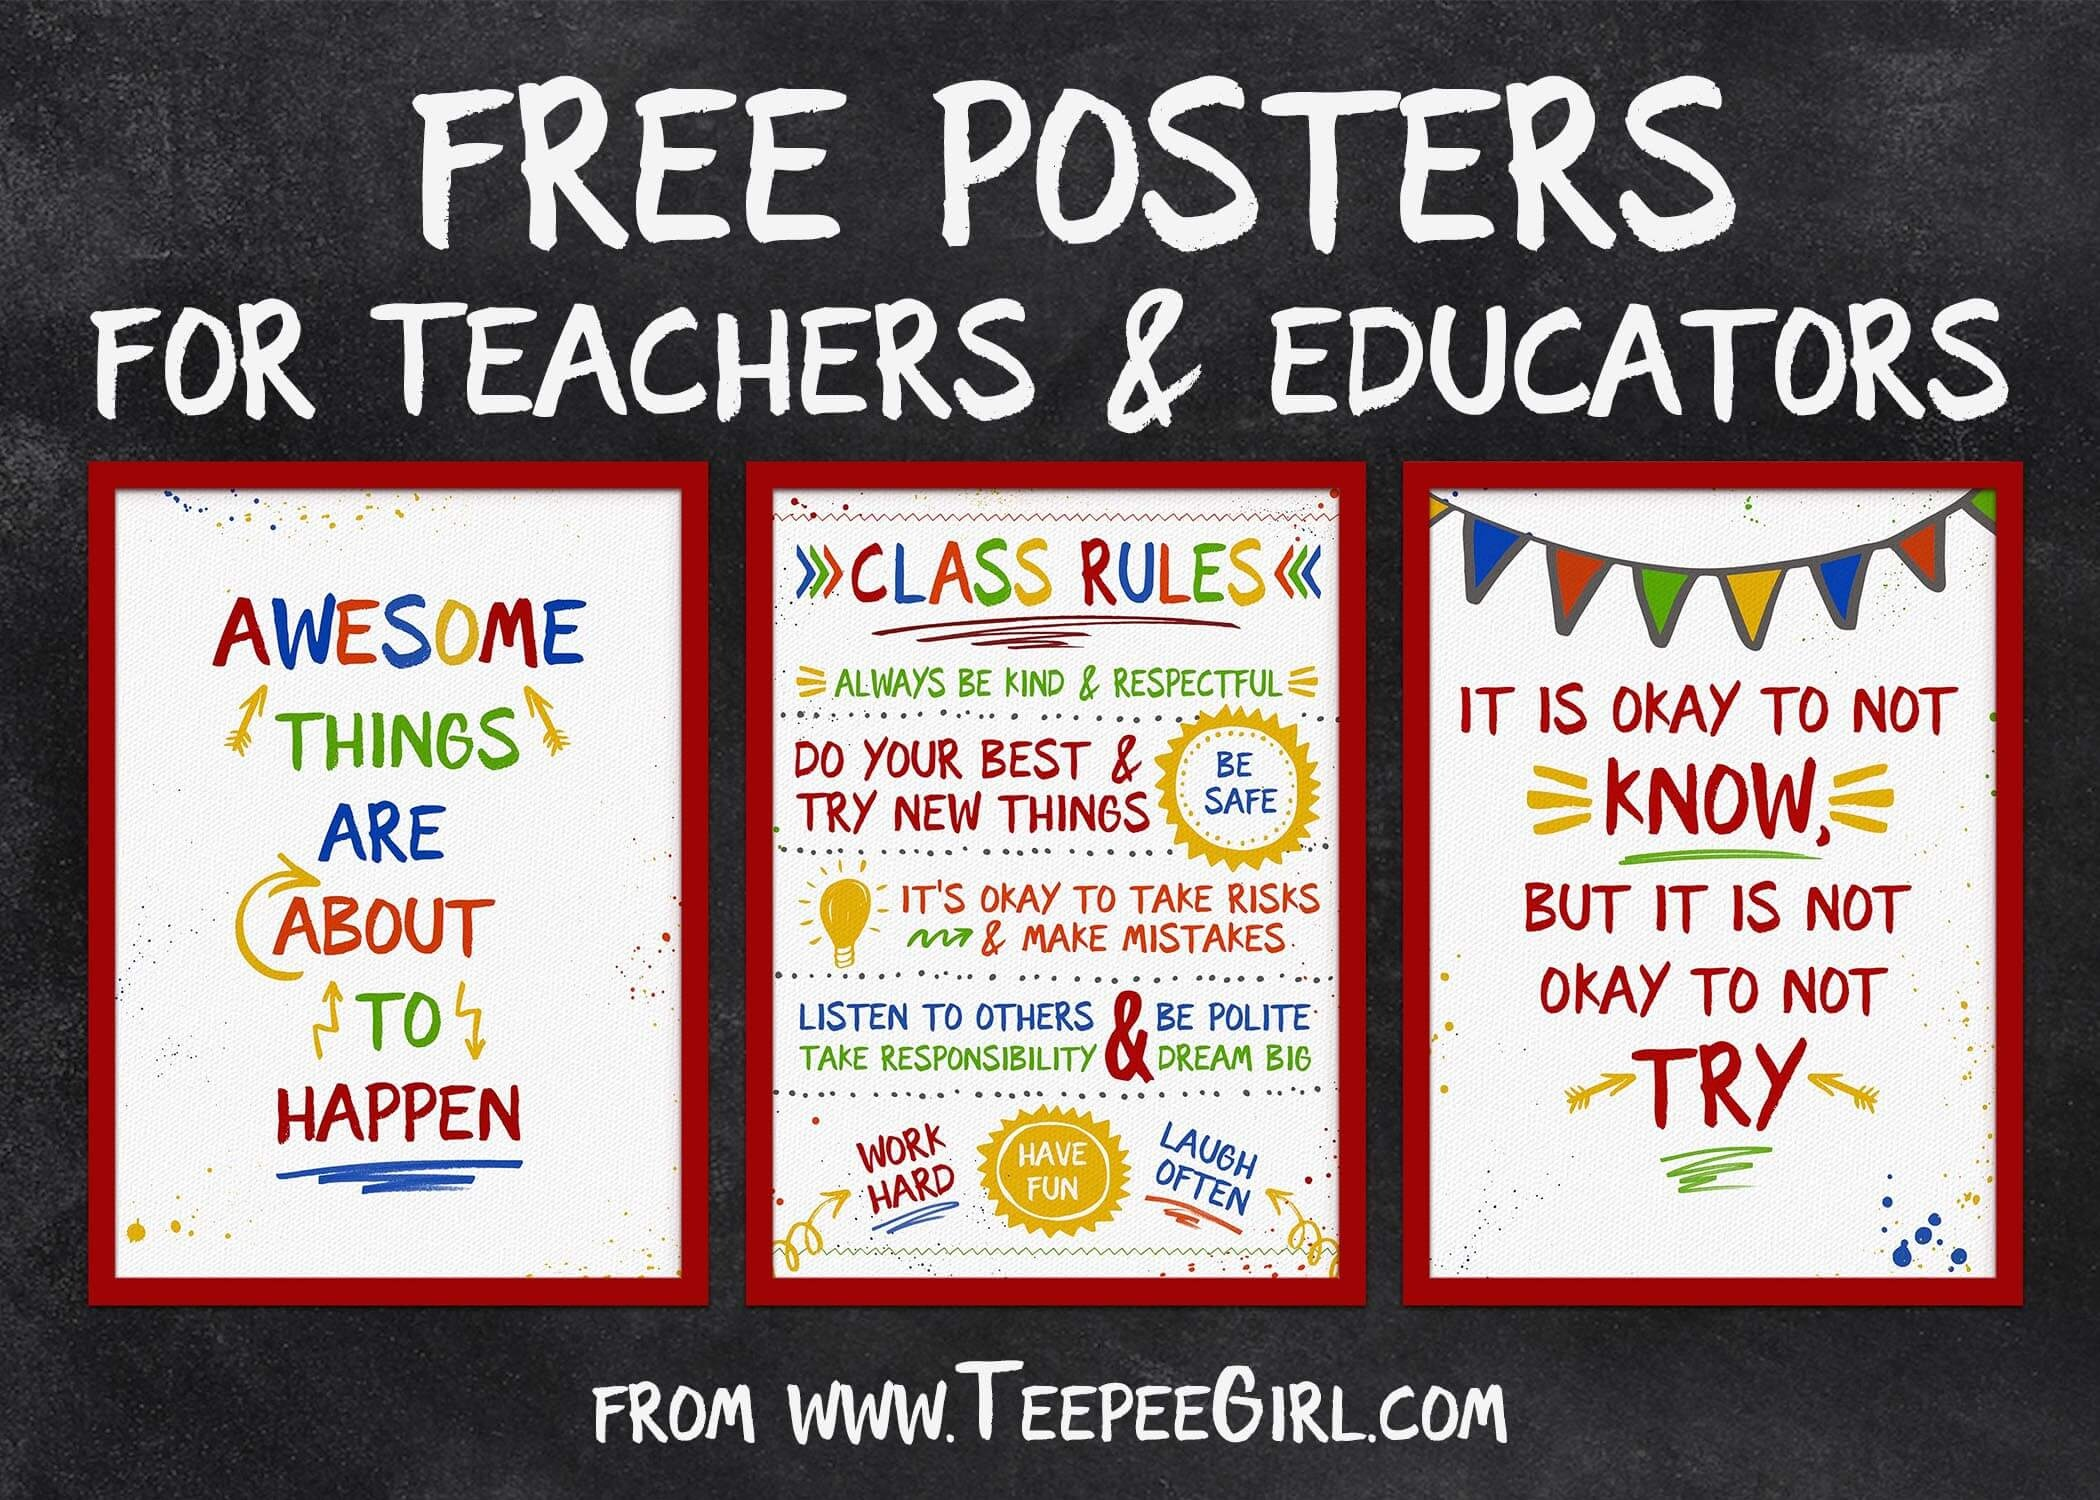 Teacher Appreciation Archives - Teepee Girl - Free Printable Posters For Teachers